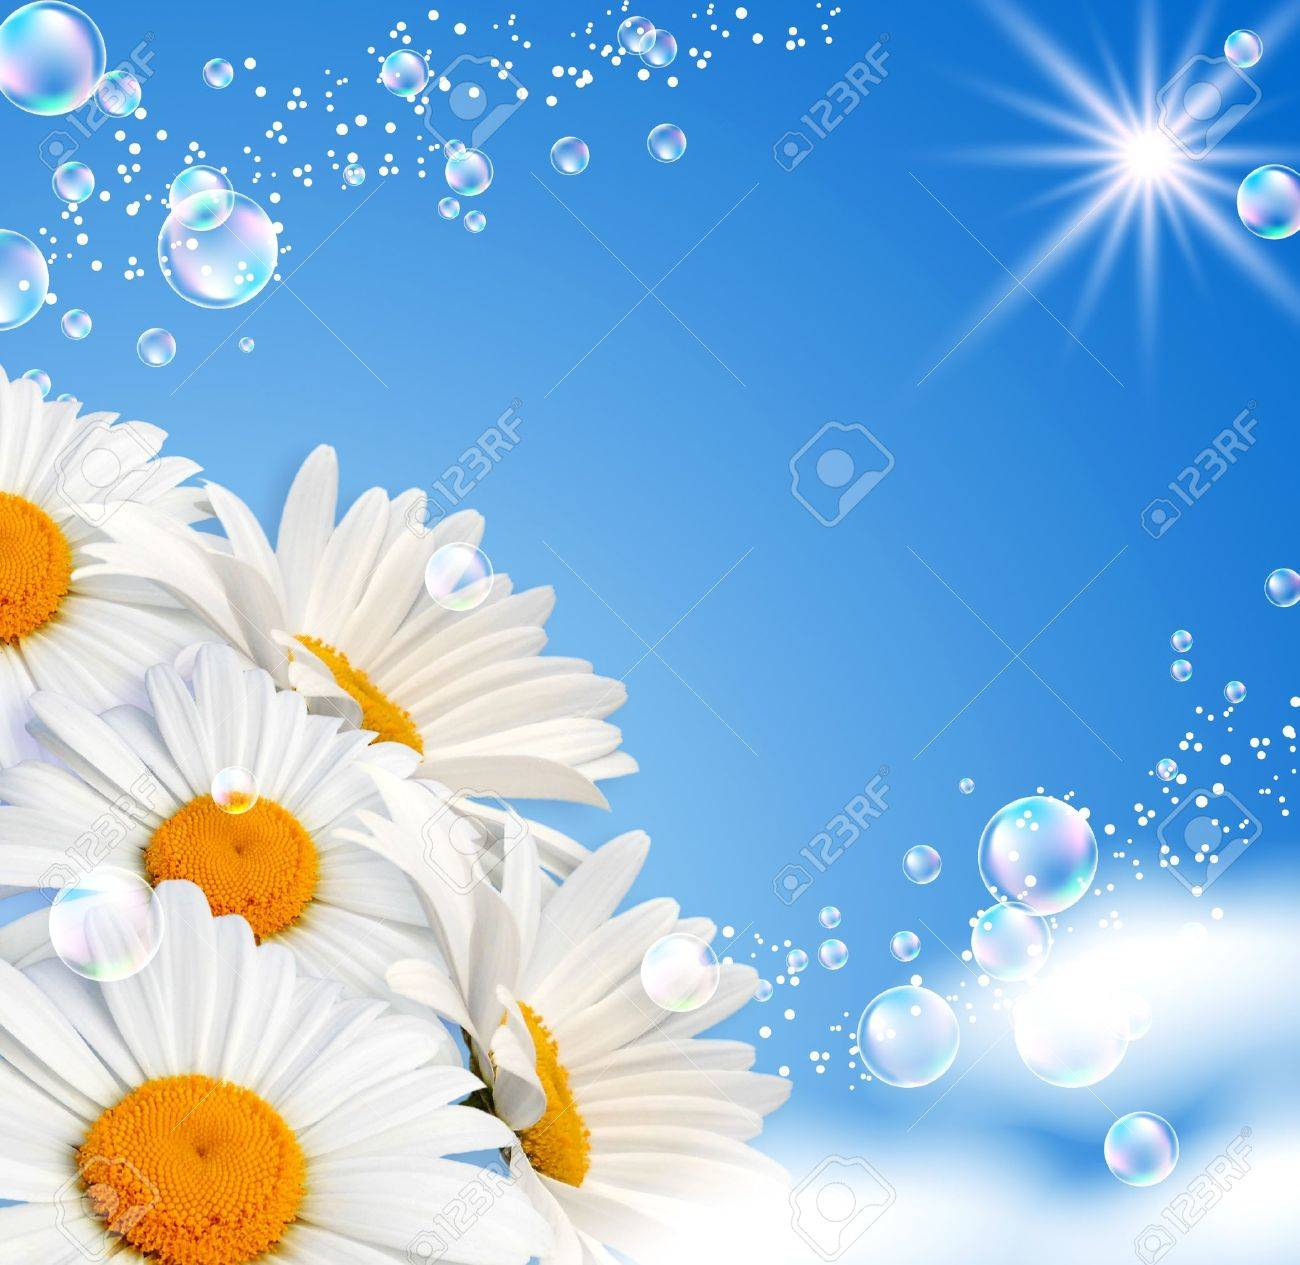 Daisies and bubbles against the sky Stock Photo - 9809827